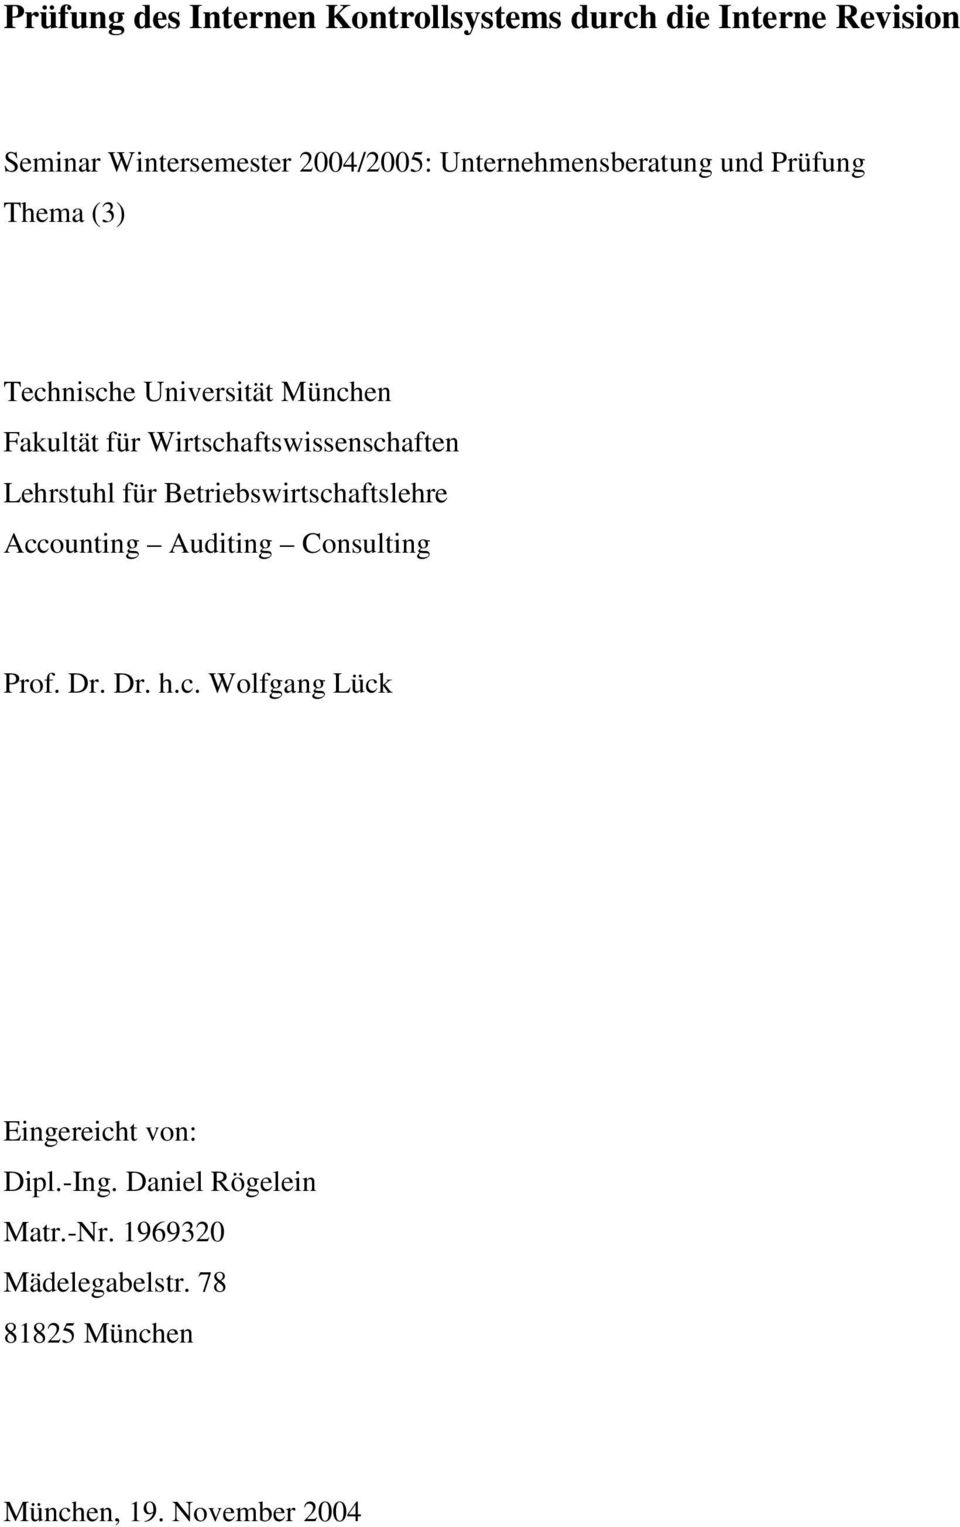 Wirtschaftswissenschaften Lehrstuhl für Betriebswirtschaftslehre Accounting Auditing Consulting Prof. Dr. Dr. h.